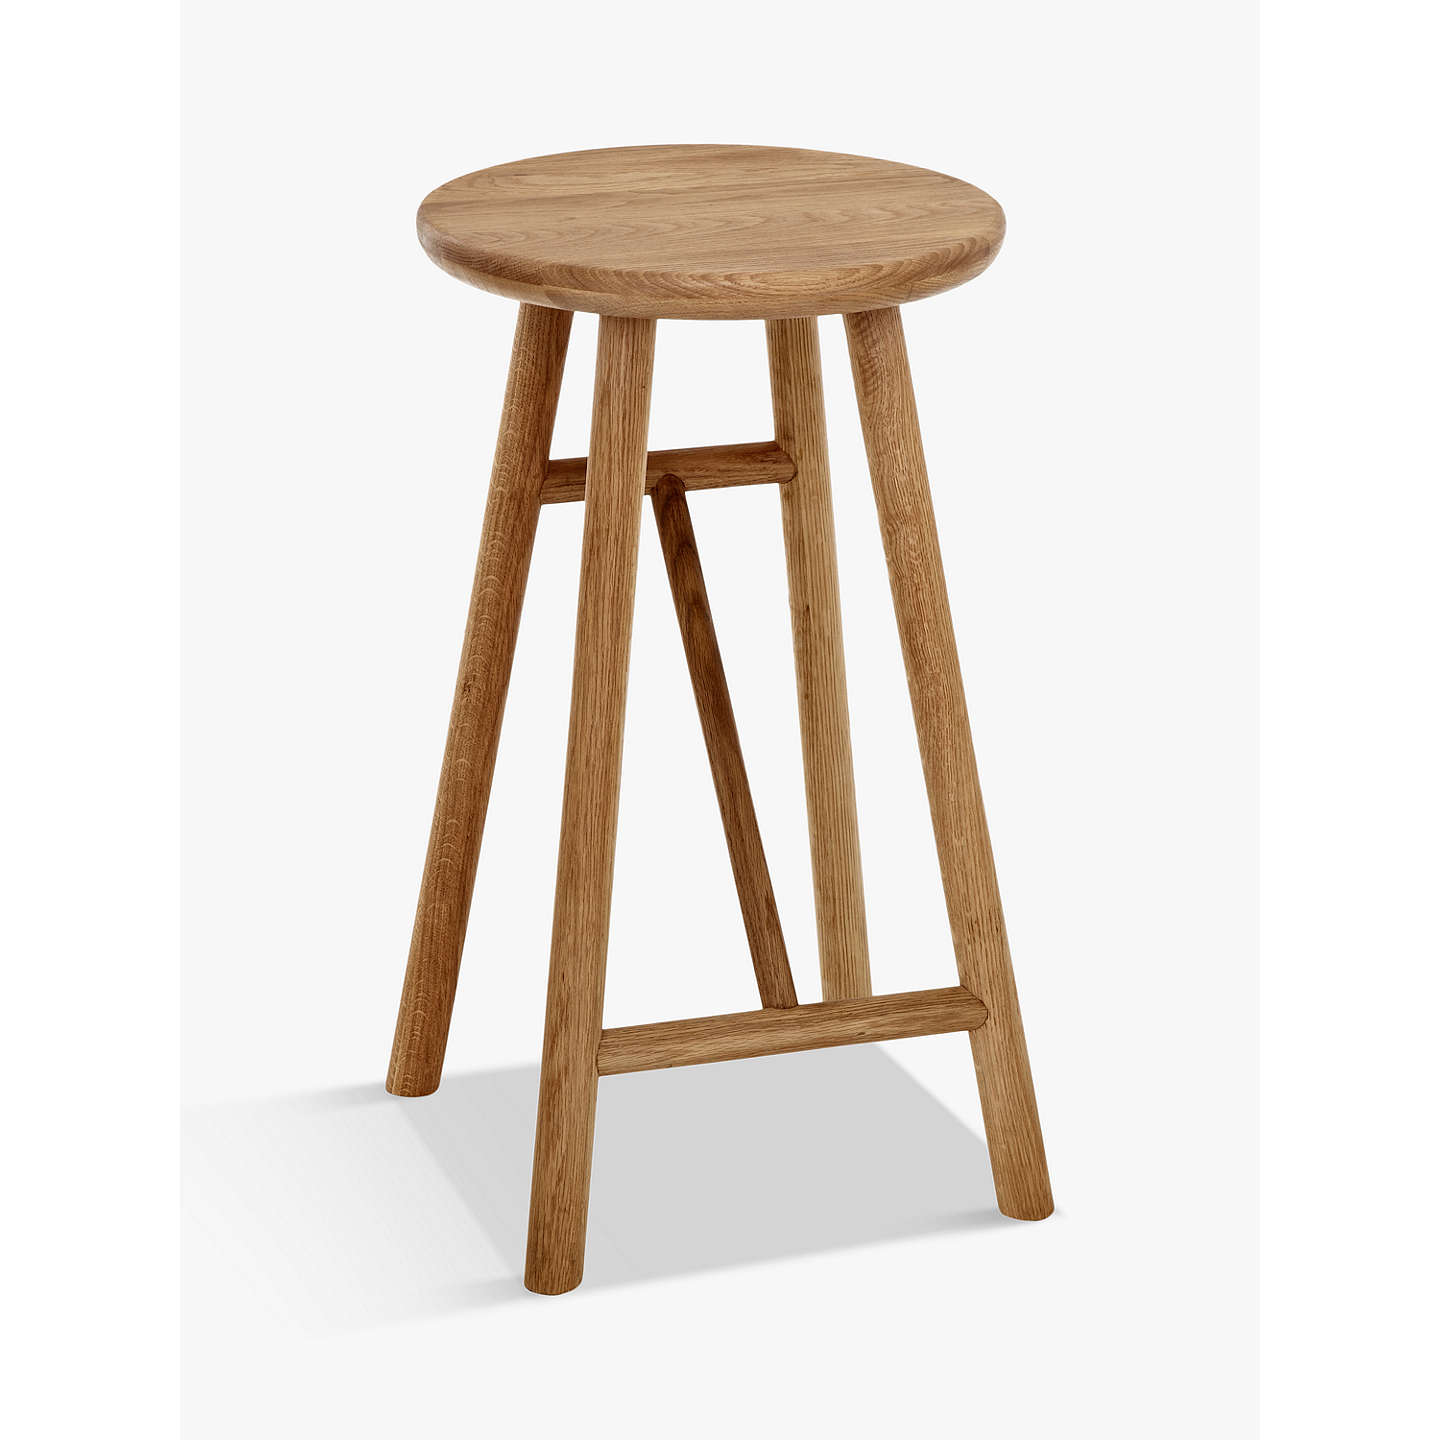 cheap wooden bar stools. BuySays Who For John Lewis Why Wood Bar Stool, Oak Online At Johnlewis.com Cheap Wooden Stools R